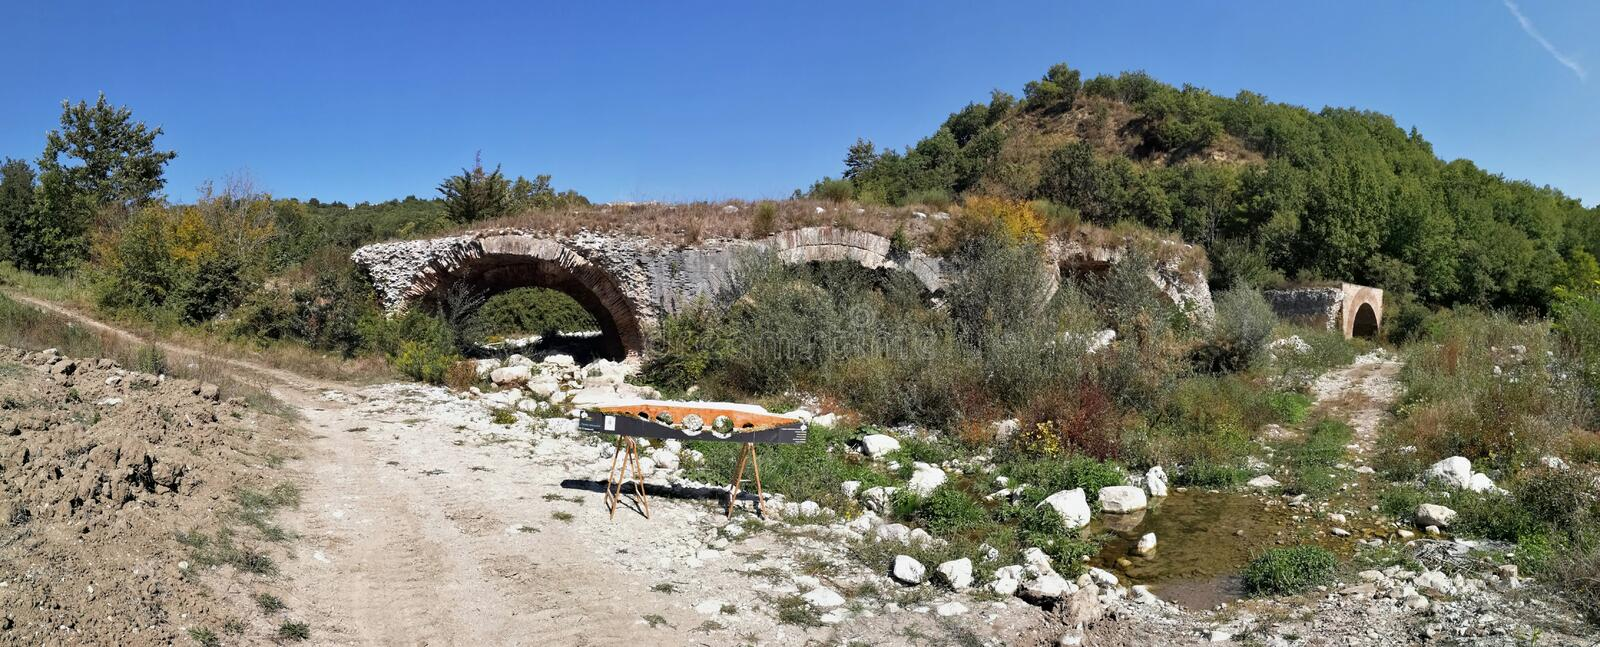 Buonalbergo - Overview of the Ponte delle Chianche. Buonalbergo, Campania, Italy - September 24, 2017: Panoramic photo of the ruins of the Ponte delle Chianche royalty free stock photos